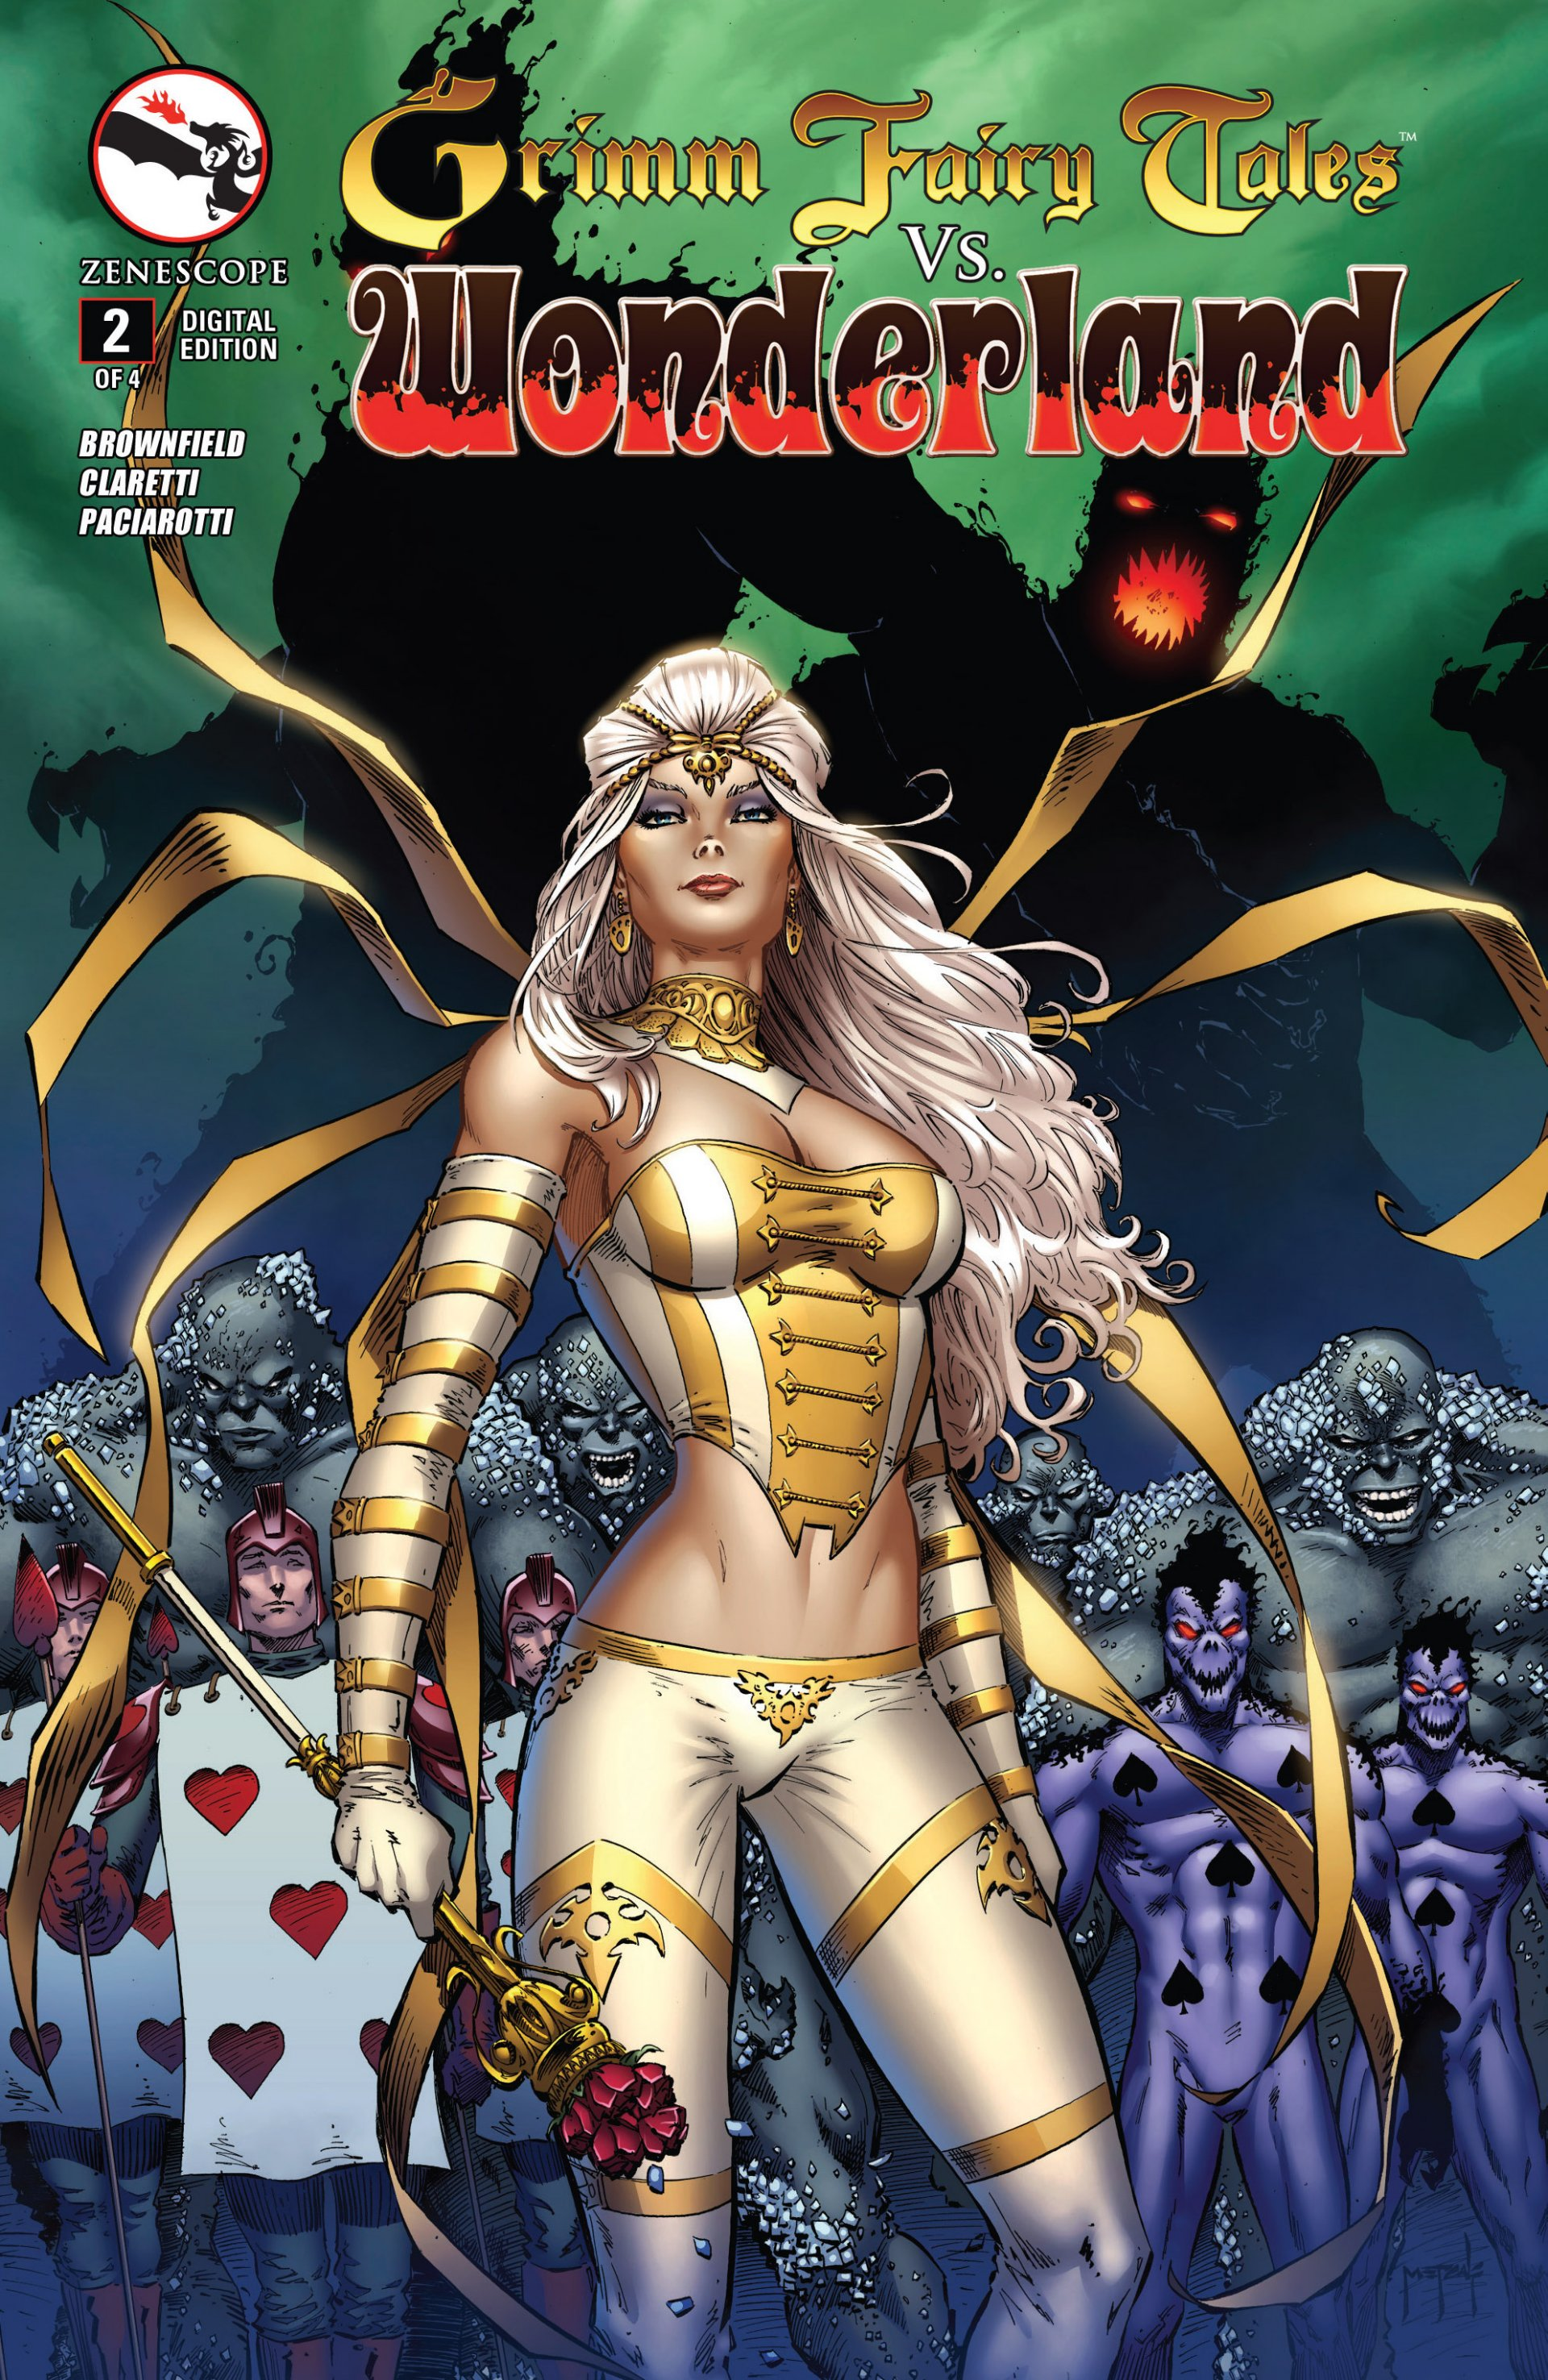 Read online Grimm Fairy Tales vs. Wonderland comic -  Issue #2 - 1